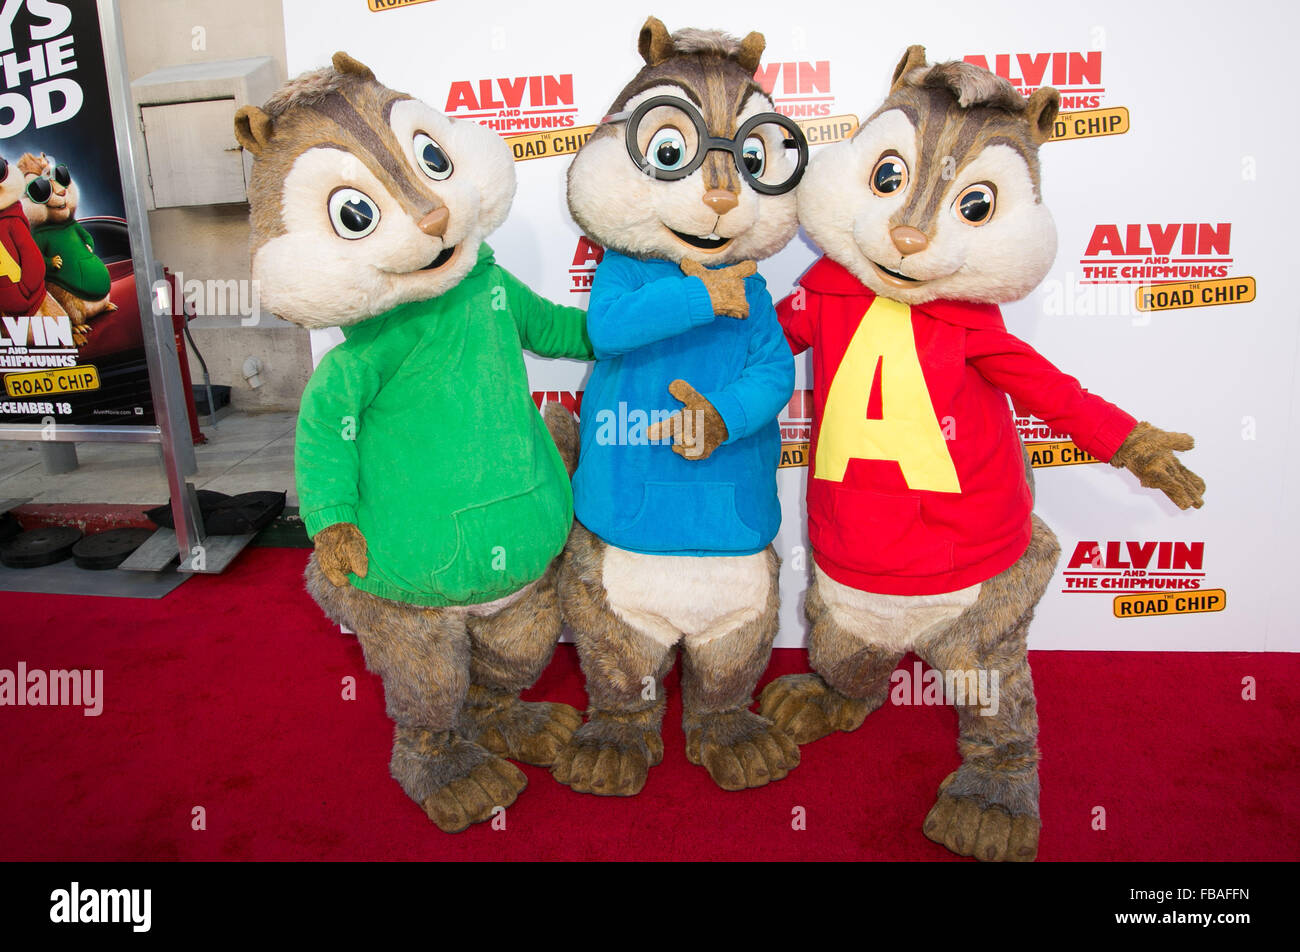 'Alvin and the Chipmunks: The Road Chip' premiere at the Darryl F. Zanuck Theatre  Featuring: Alvin and The Chipmunks Where: Los Angeles, California, United States When: 12 Dec 2015 Stock Photo